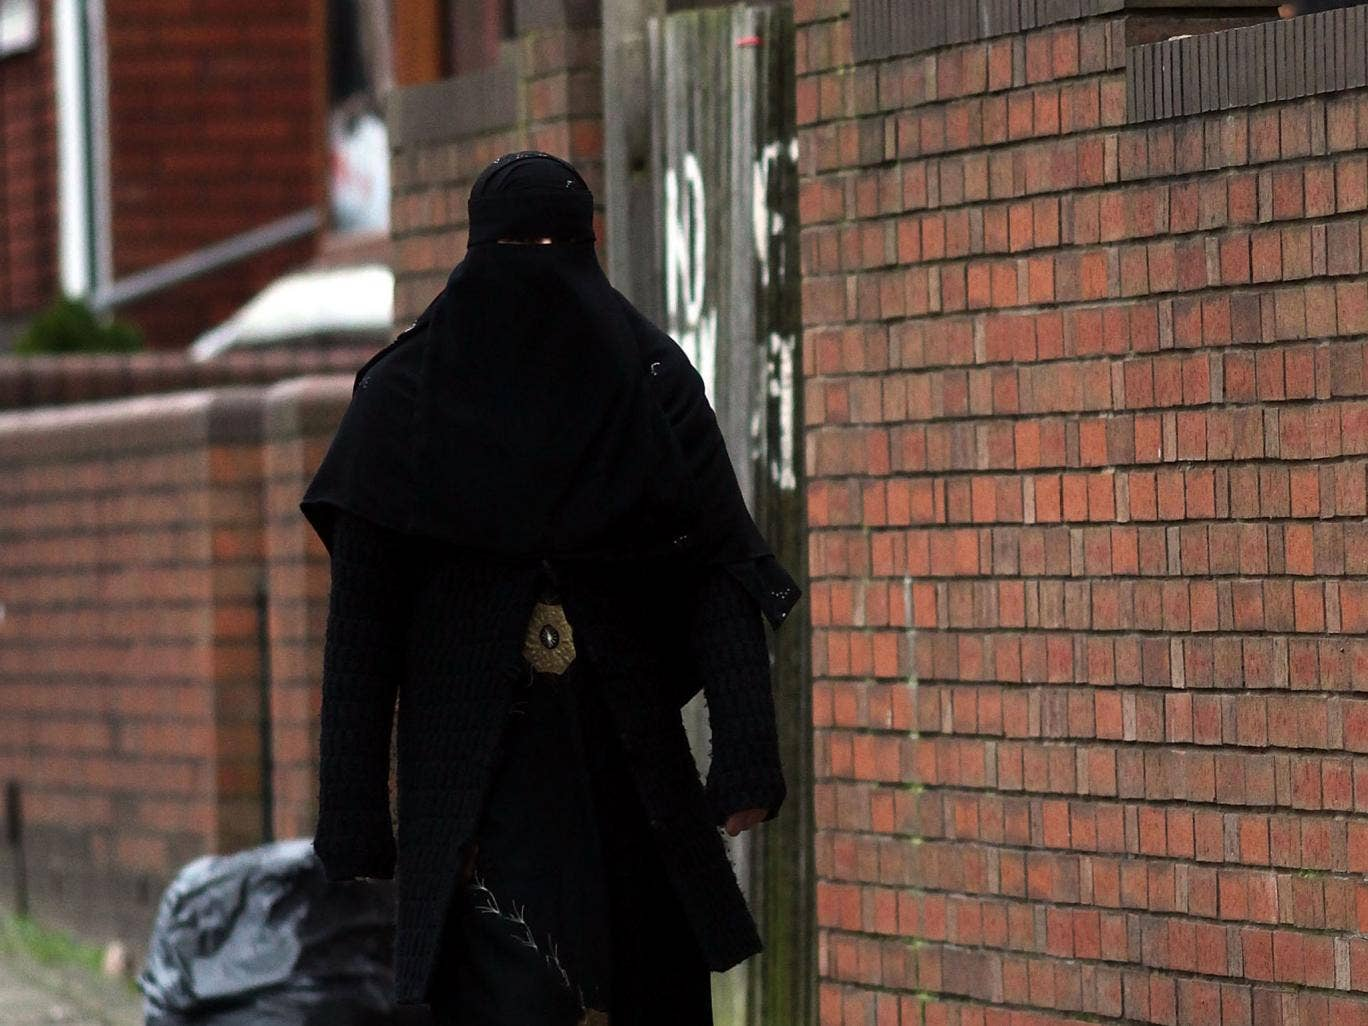 Guidlines on dealing with burkas in court stress that justice must be the paramount concern